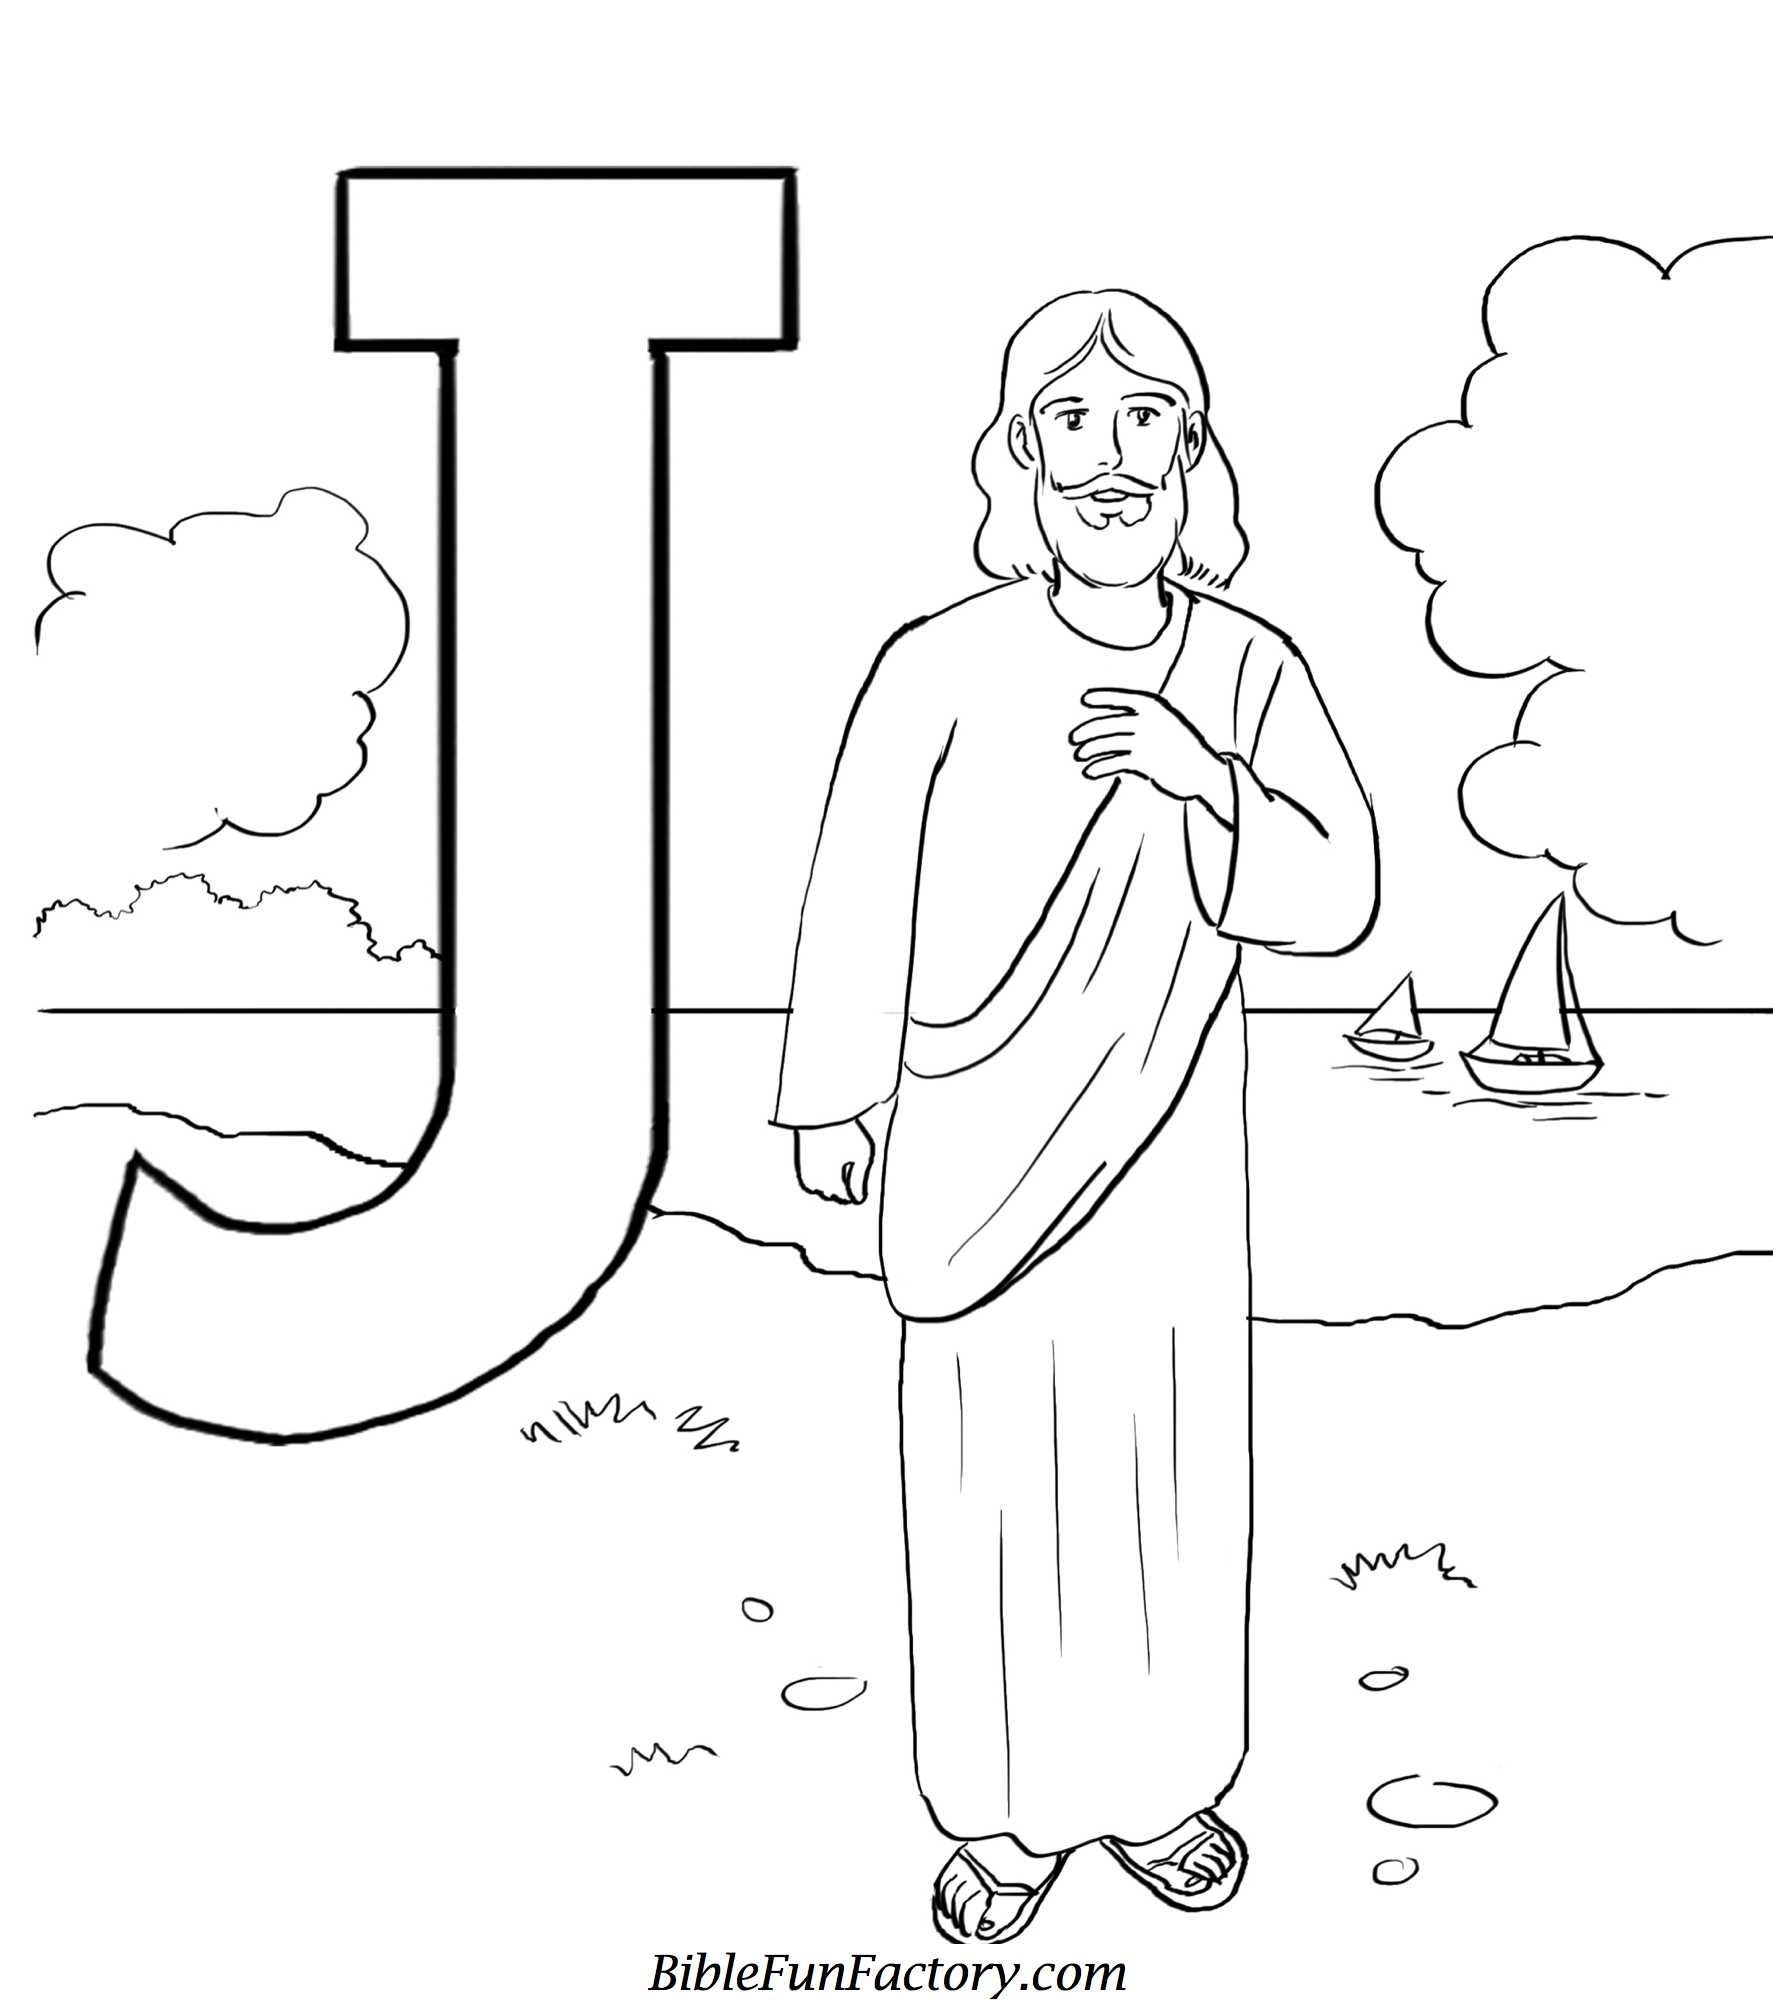 Jesus Christ Coloring Pages is